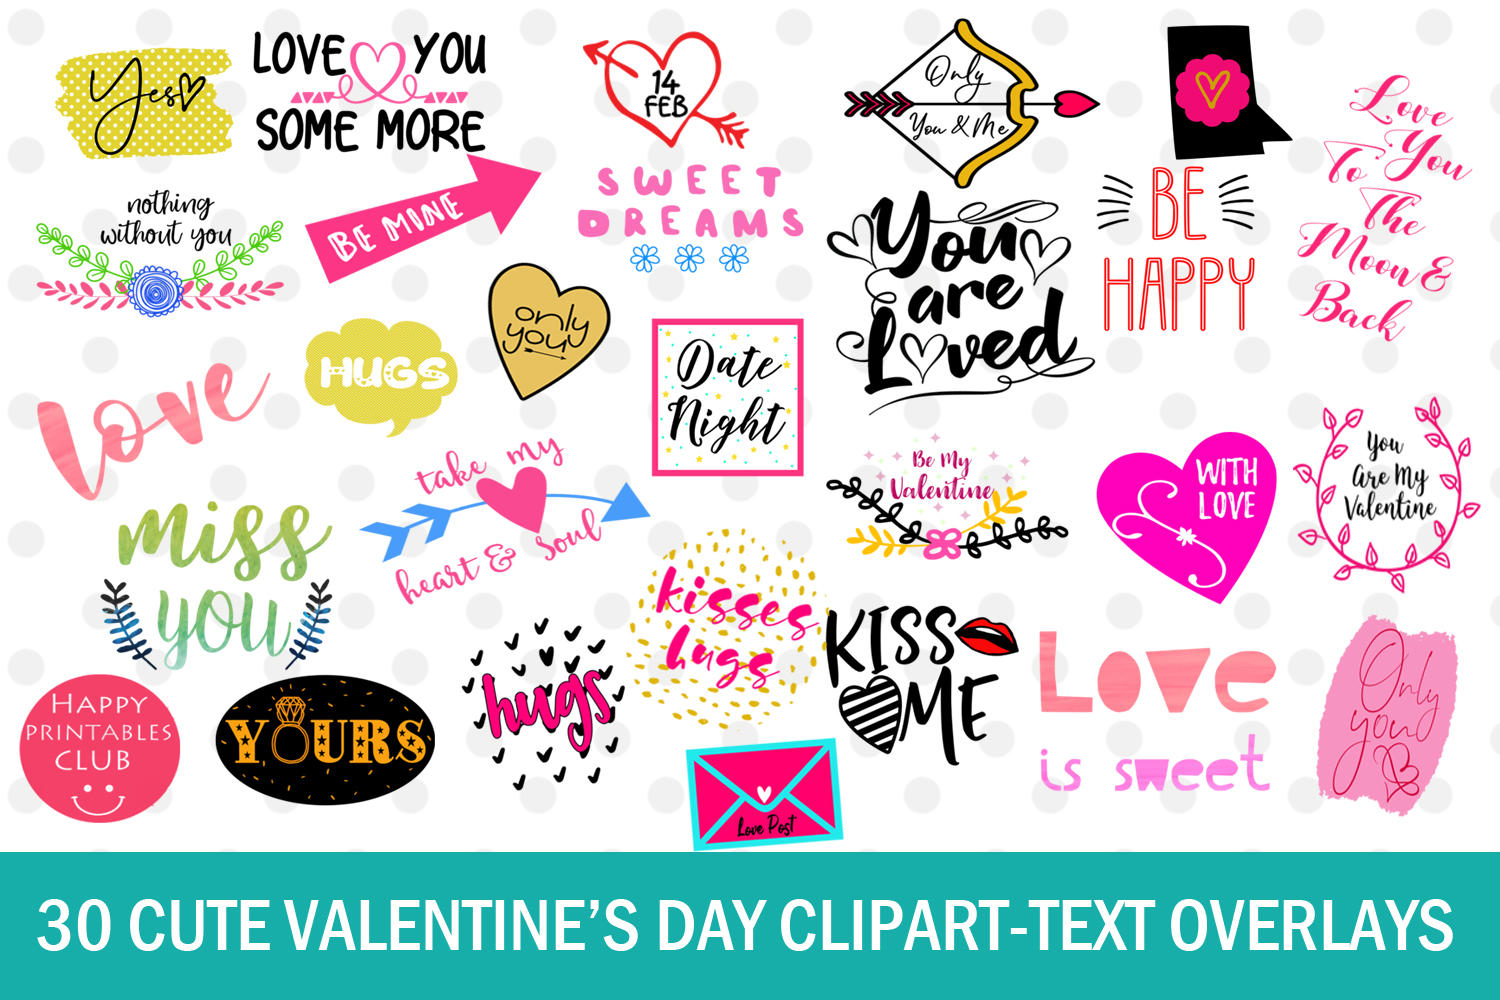 Download Free 30 Cute Valentine S Day Clipart Text Overlays Graphic By Happy for Cricut Explore, Silhouette and other cutting machines.